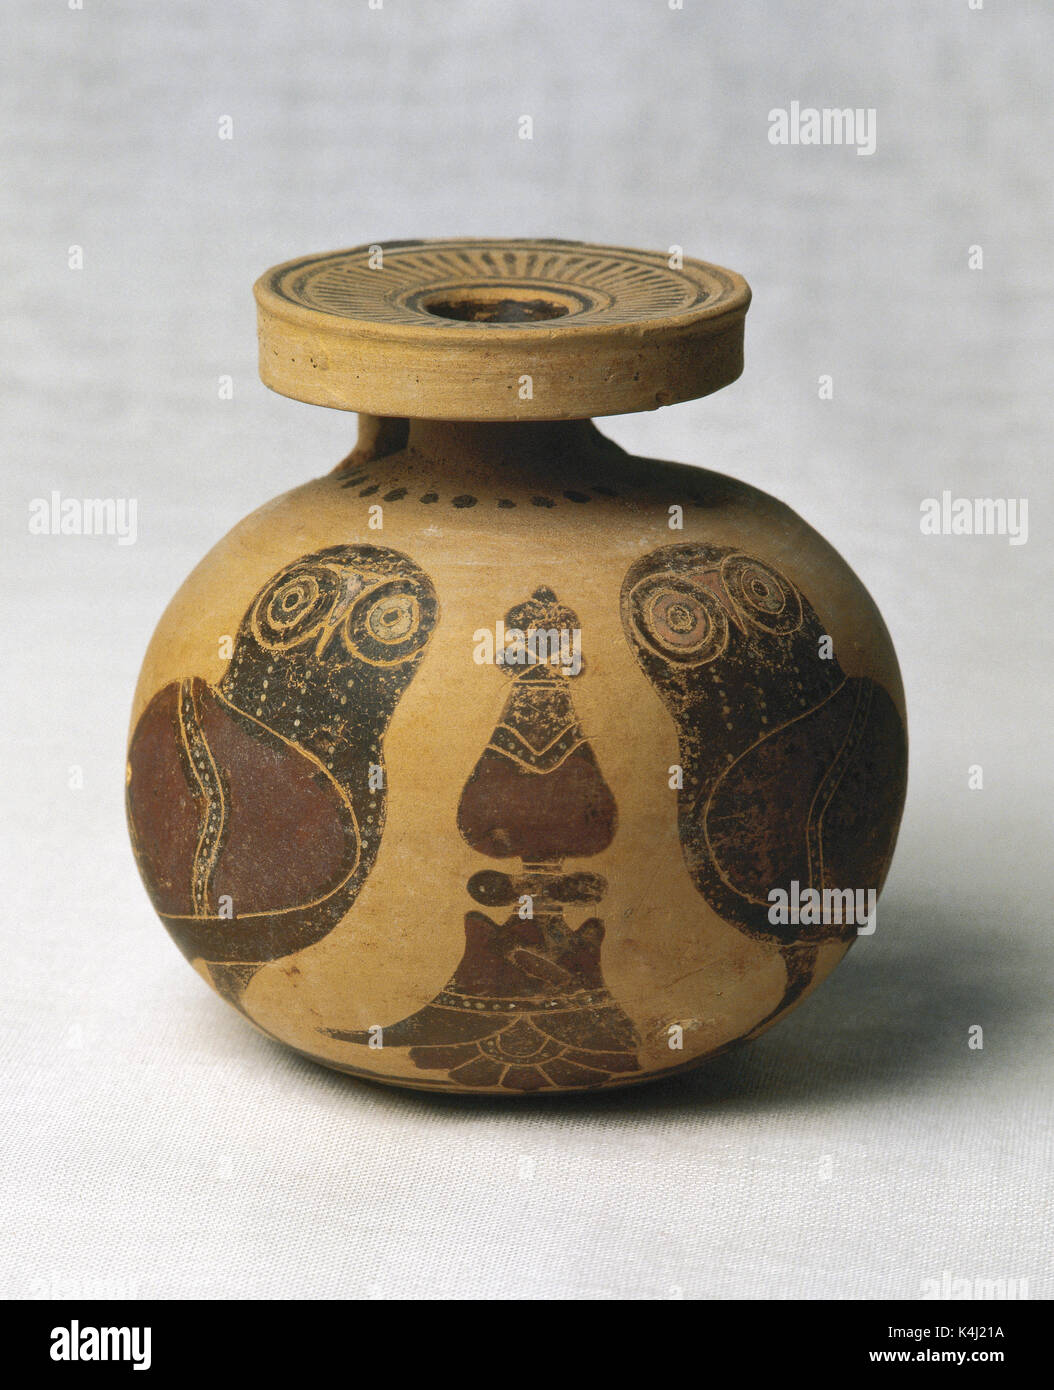 Greek Art. Aryballos with owl decoration in black and red, separated with floral motifs. 6th century BC. From Corinth (Greece). Perfume Museum. Barcelona. Spain. - Stock Image